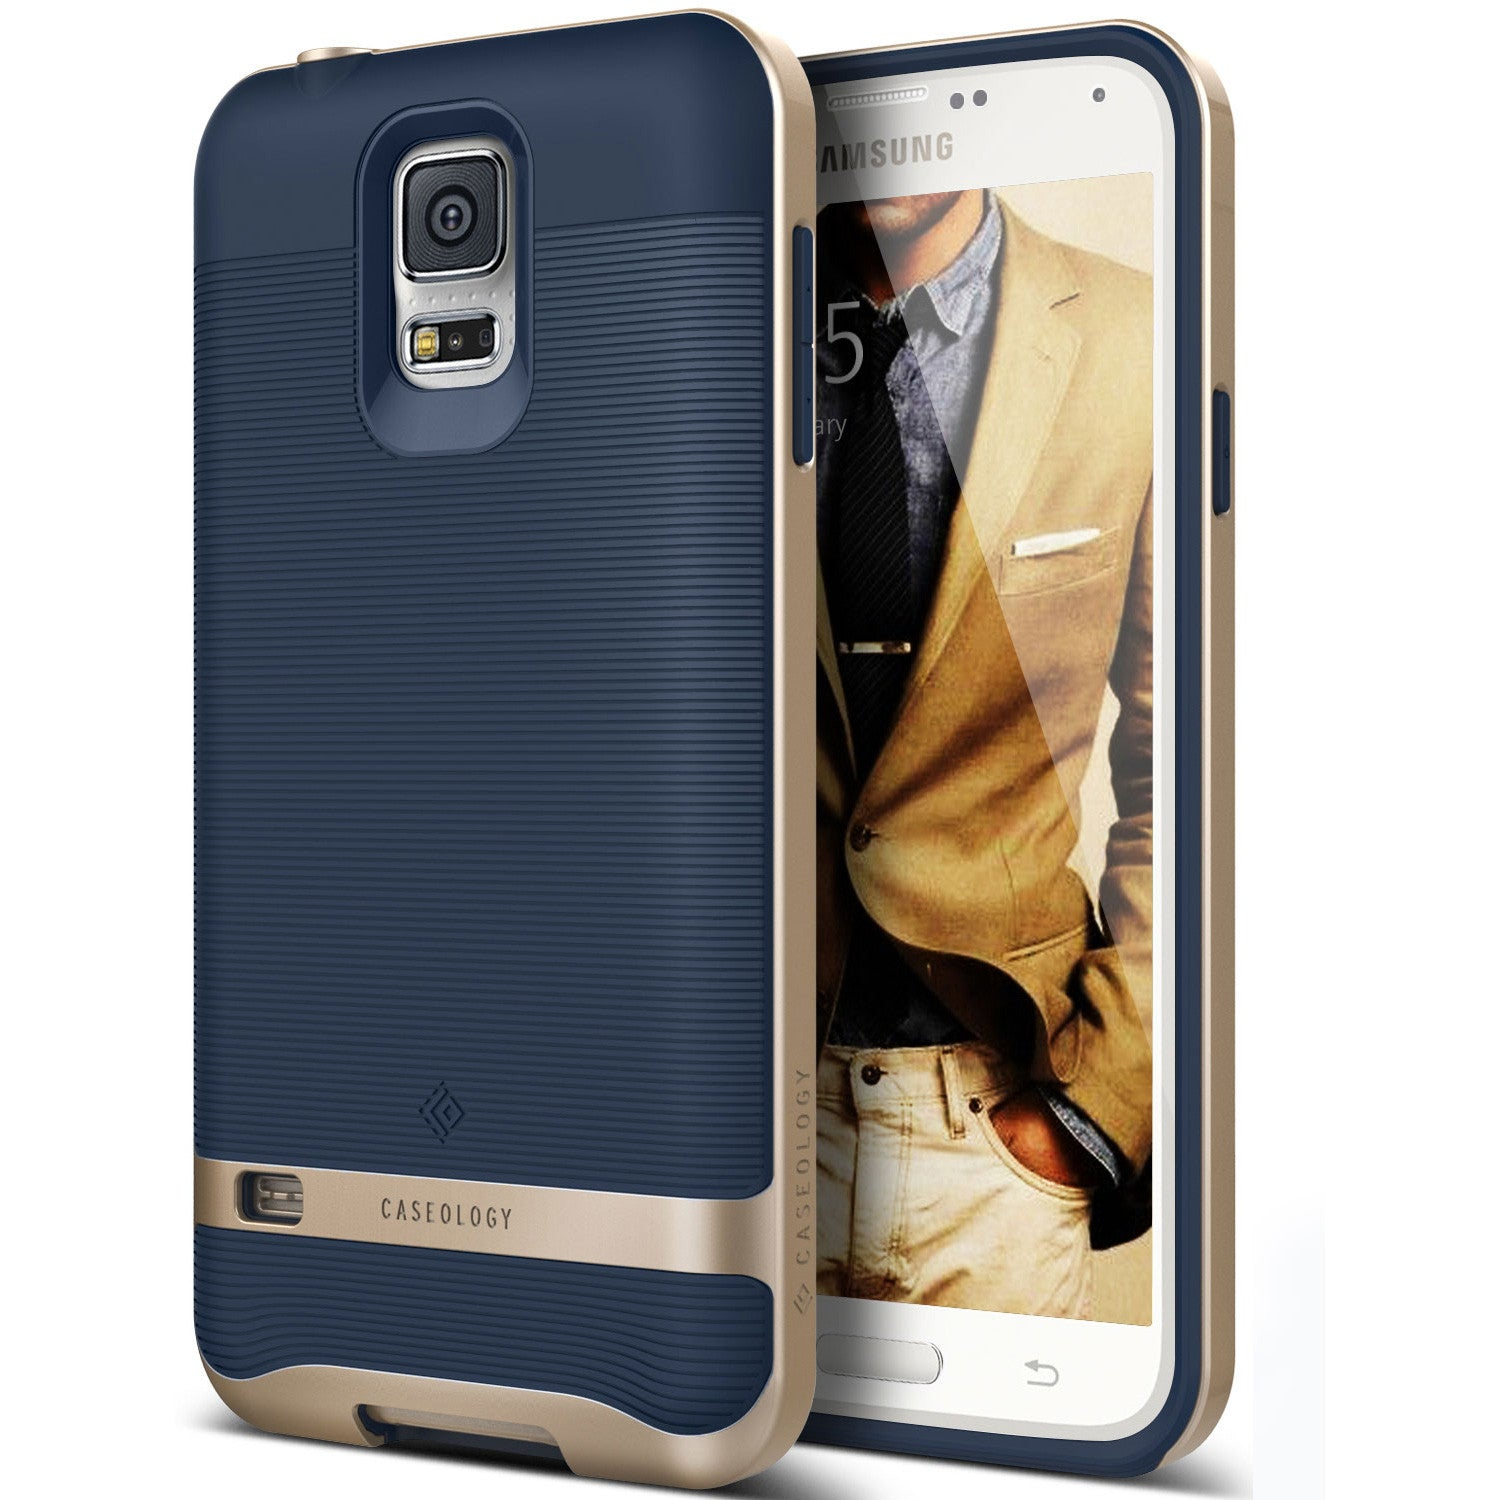 Caseology Galaxy S5 Case Wavelength Series in Navy Blue